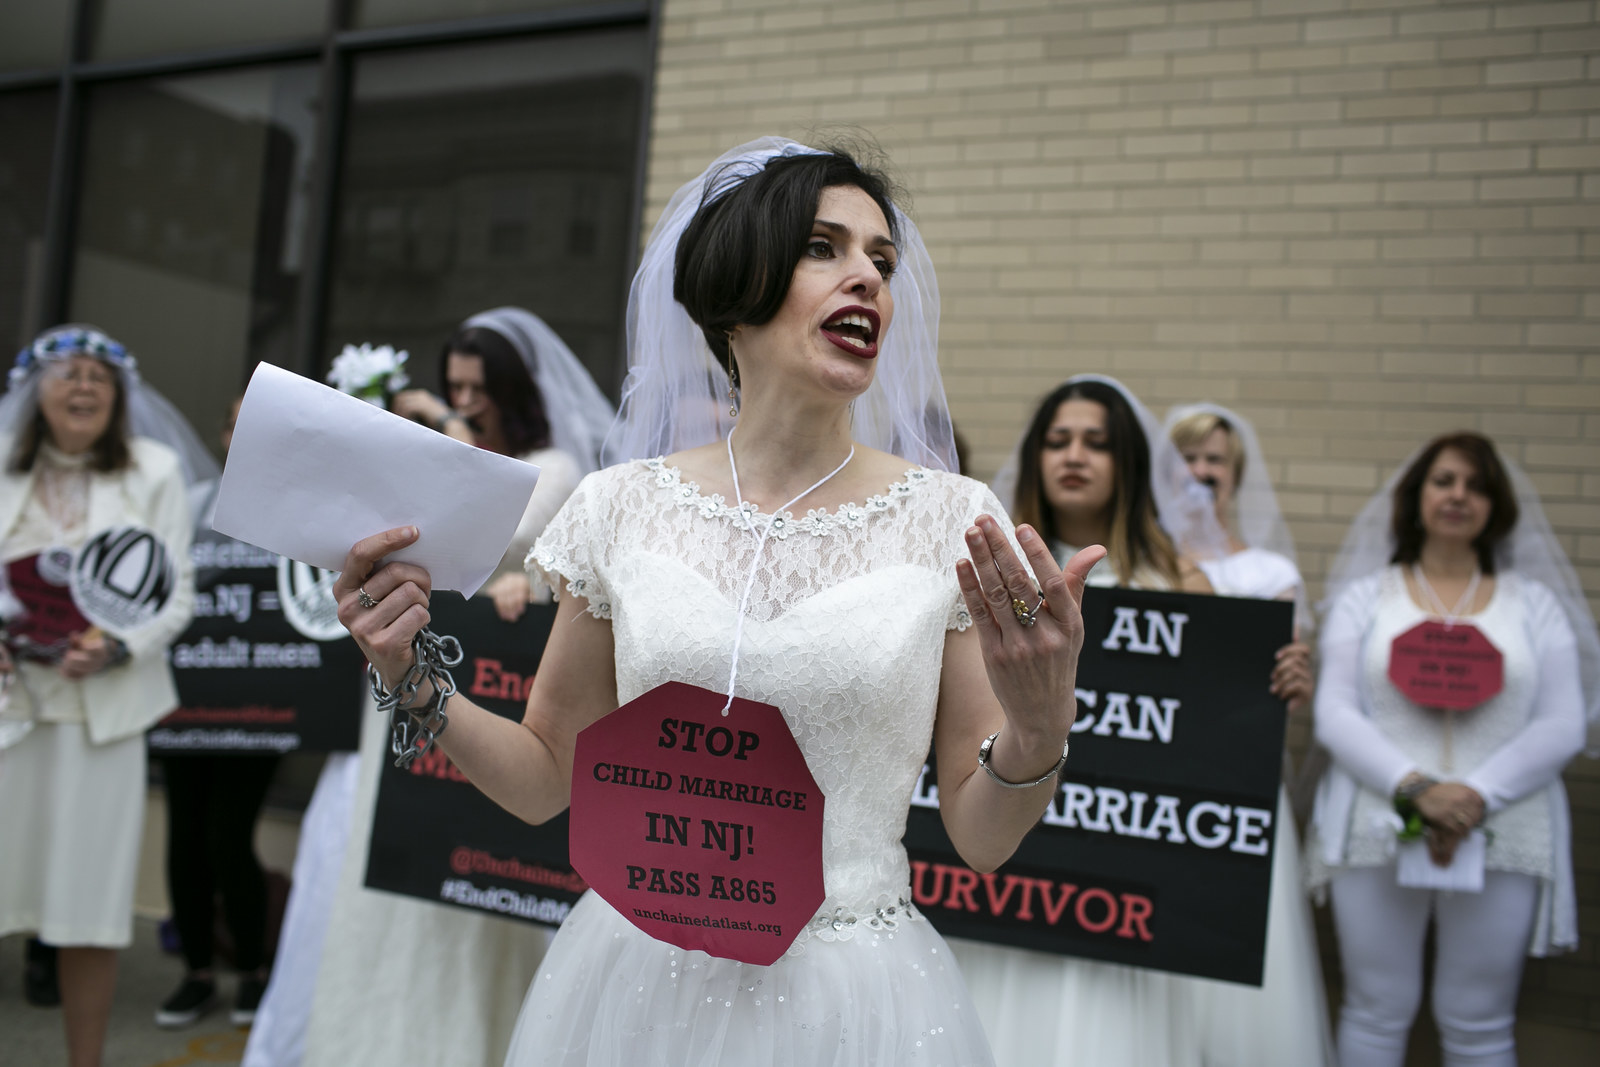 Child Marriage Is Legal In 48 States. These Women Are